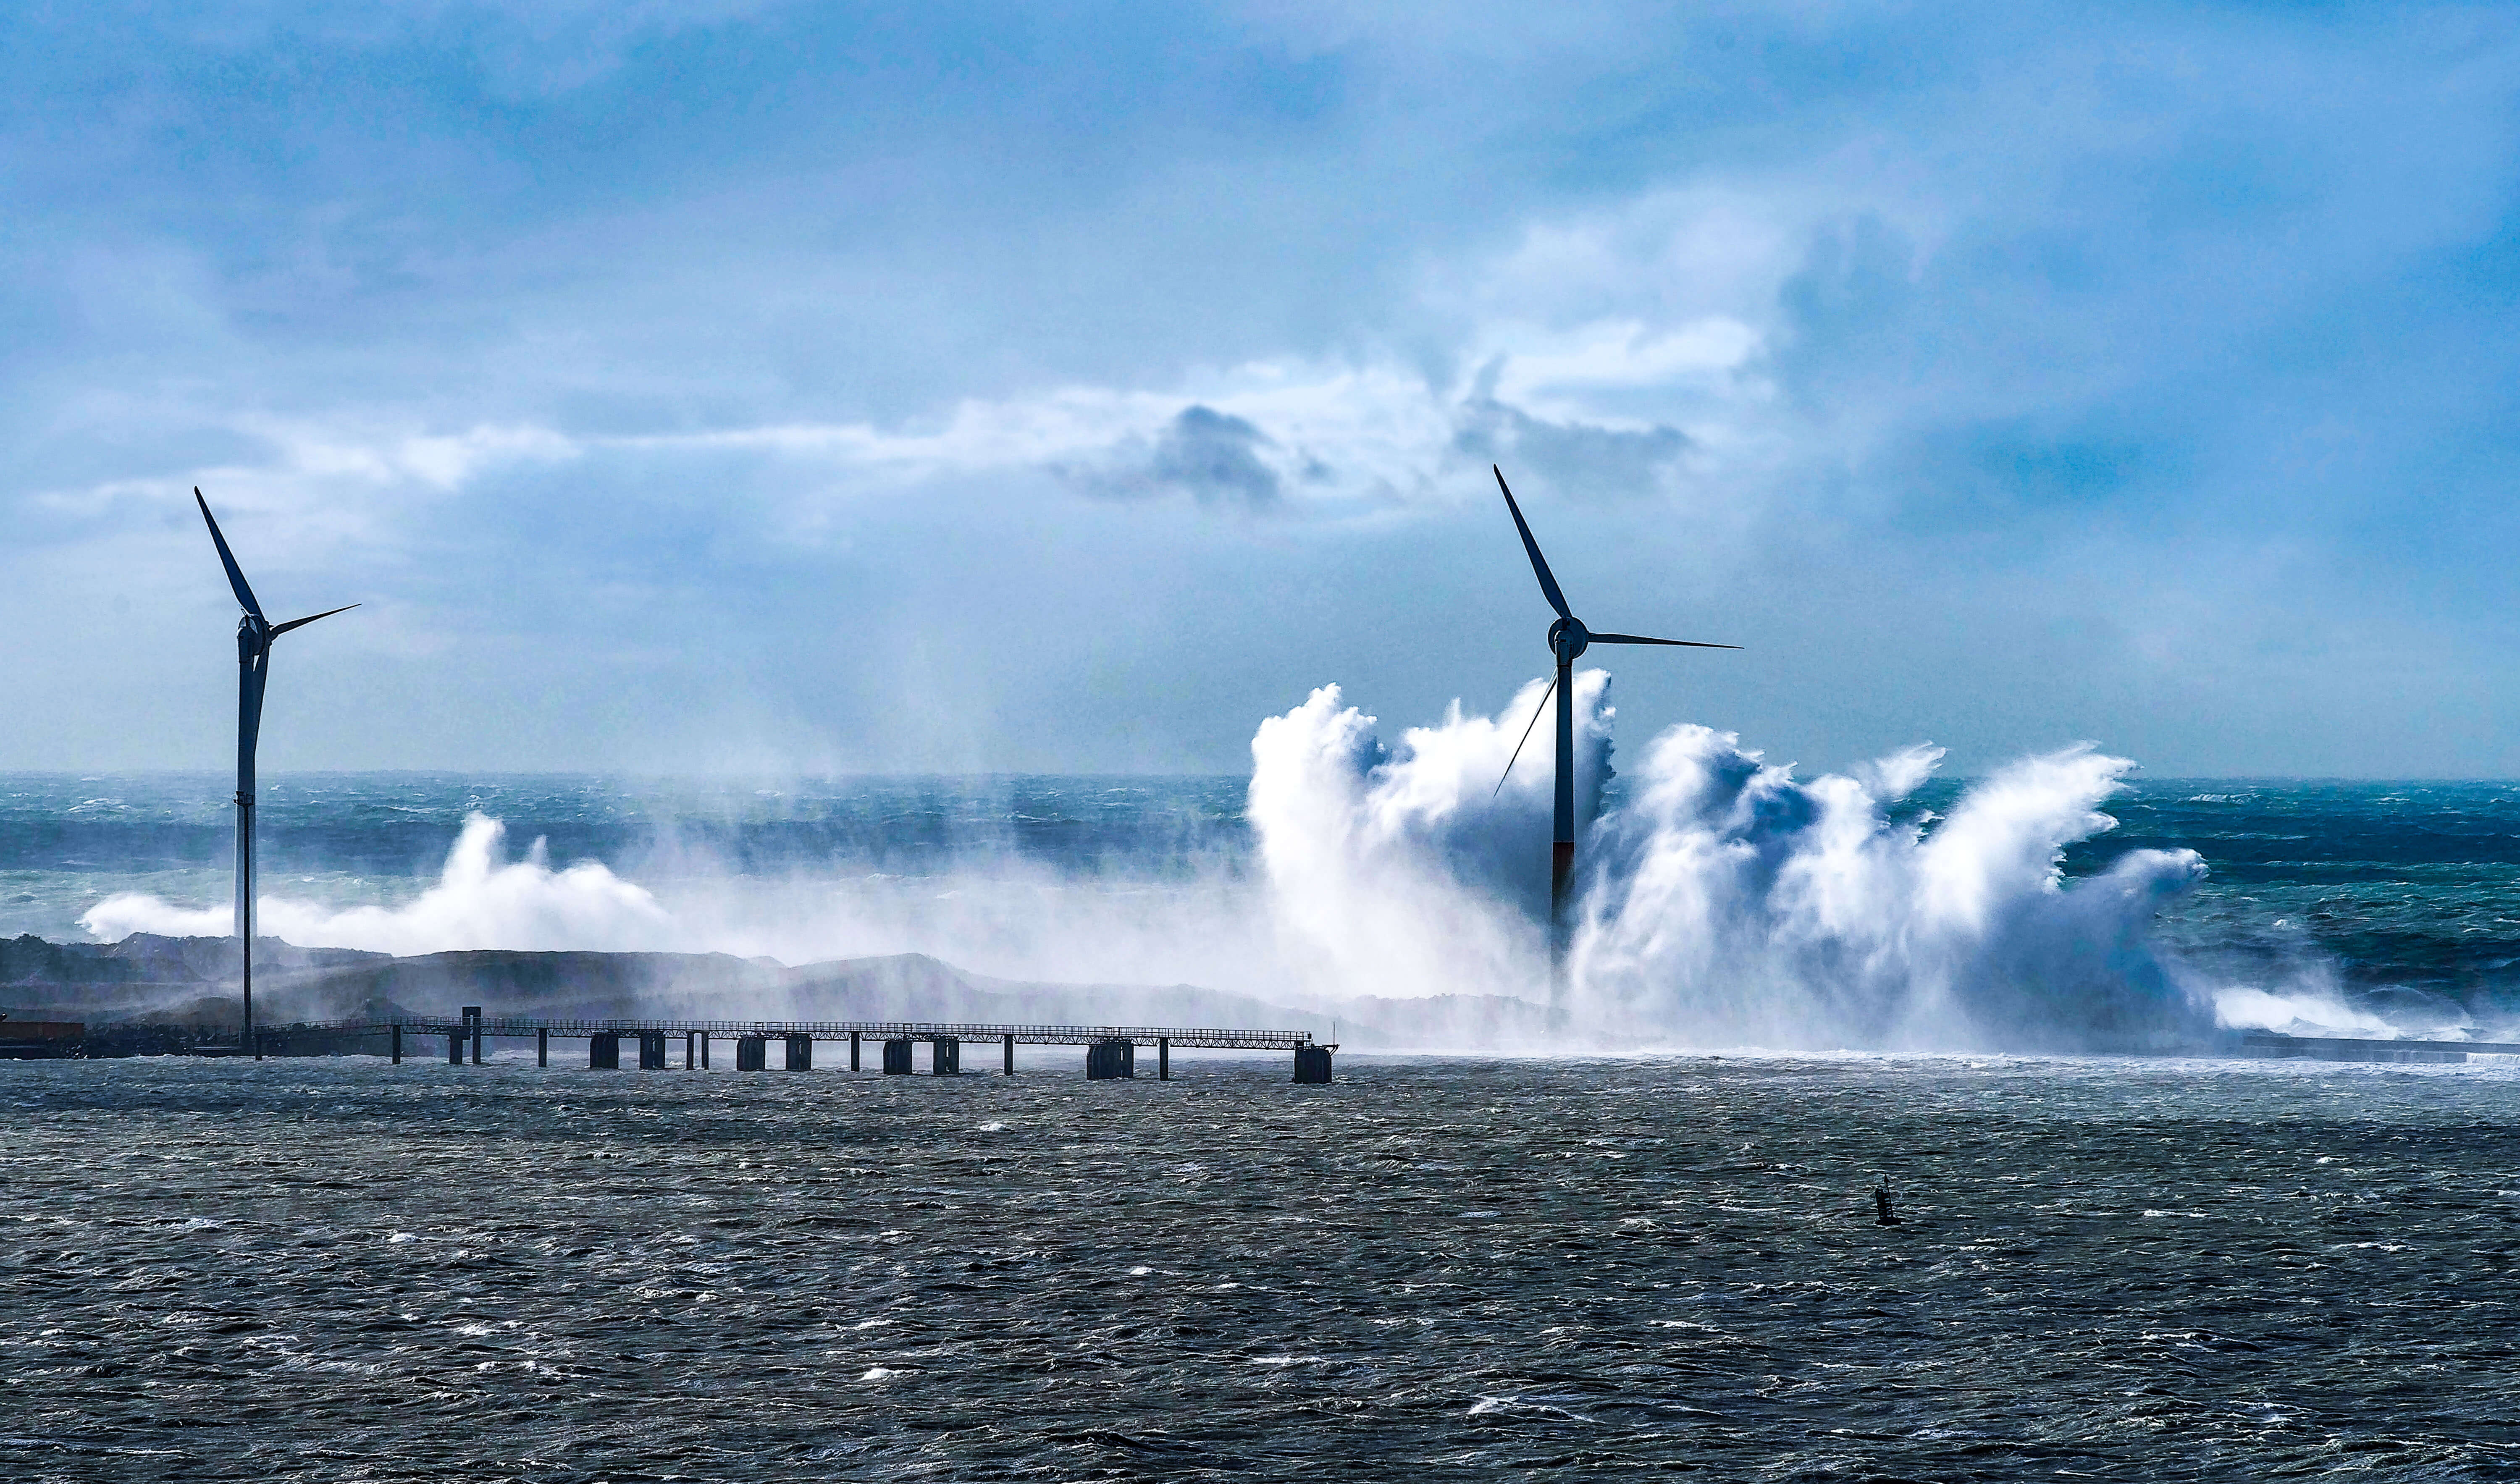 Wind turbines are exposed to extreme weather conditions